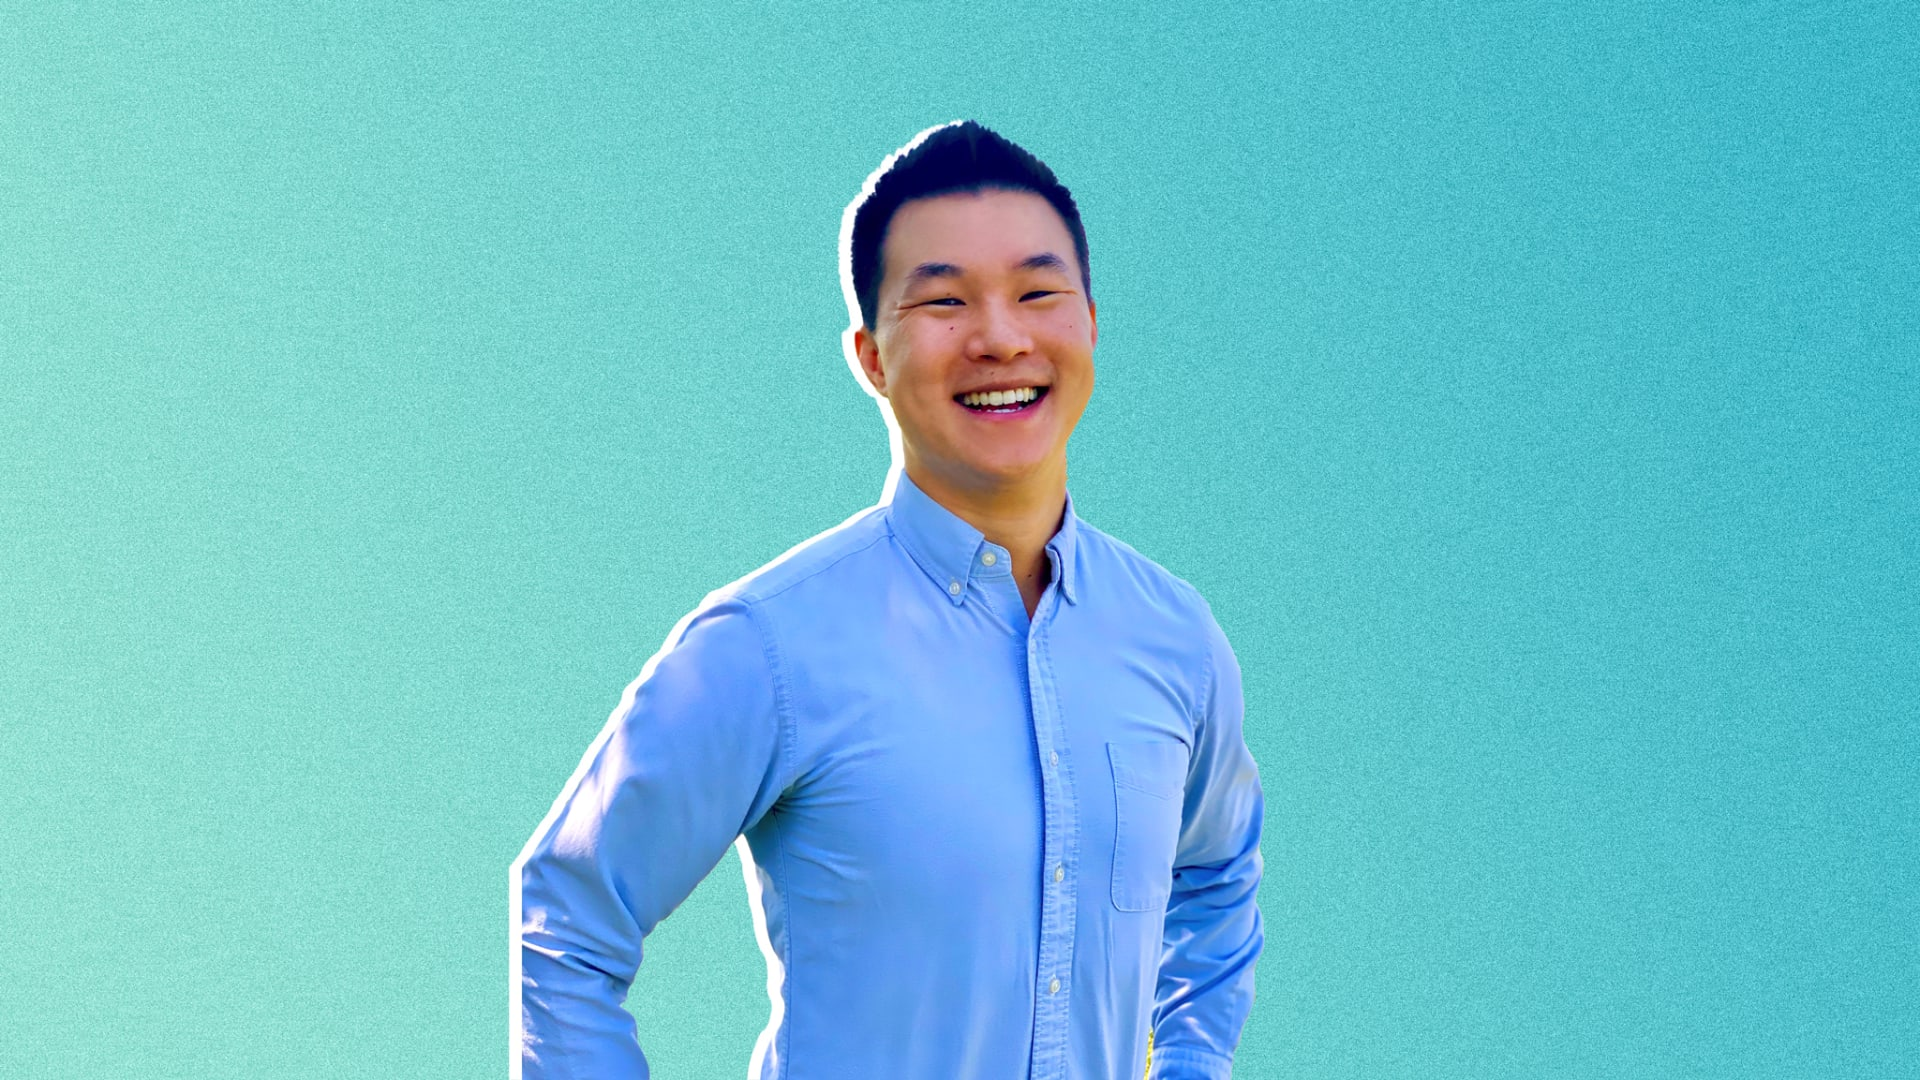 Ray Lui, co-founder of Sprinly.